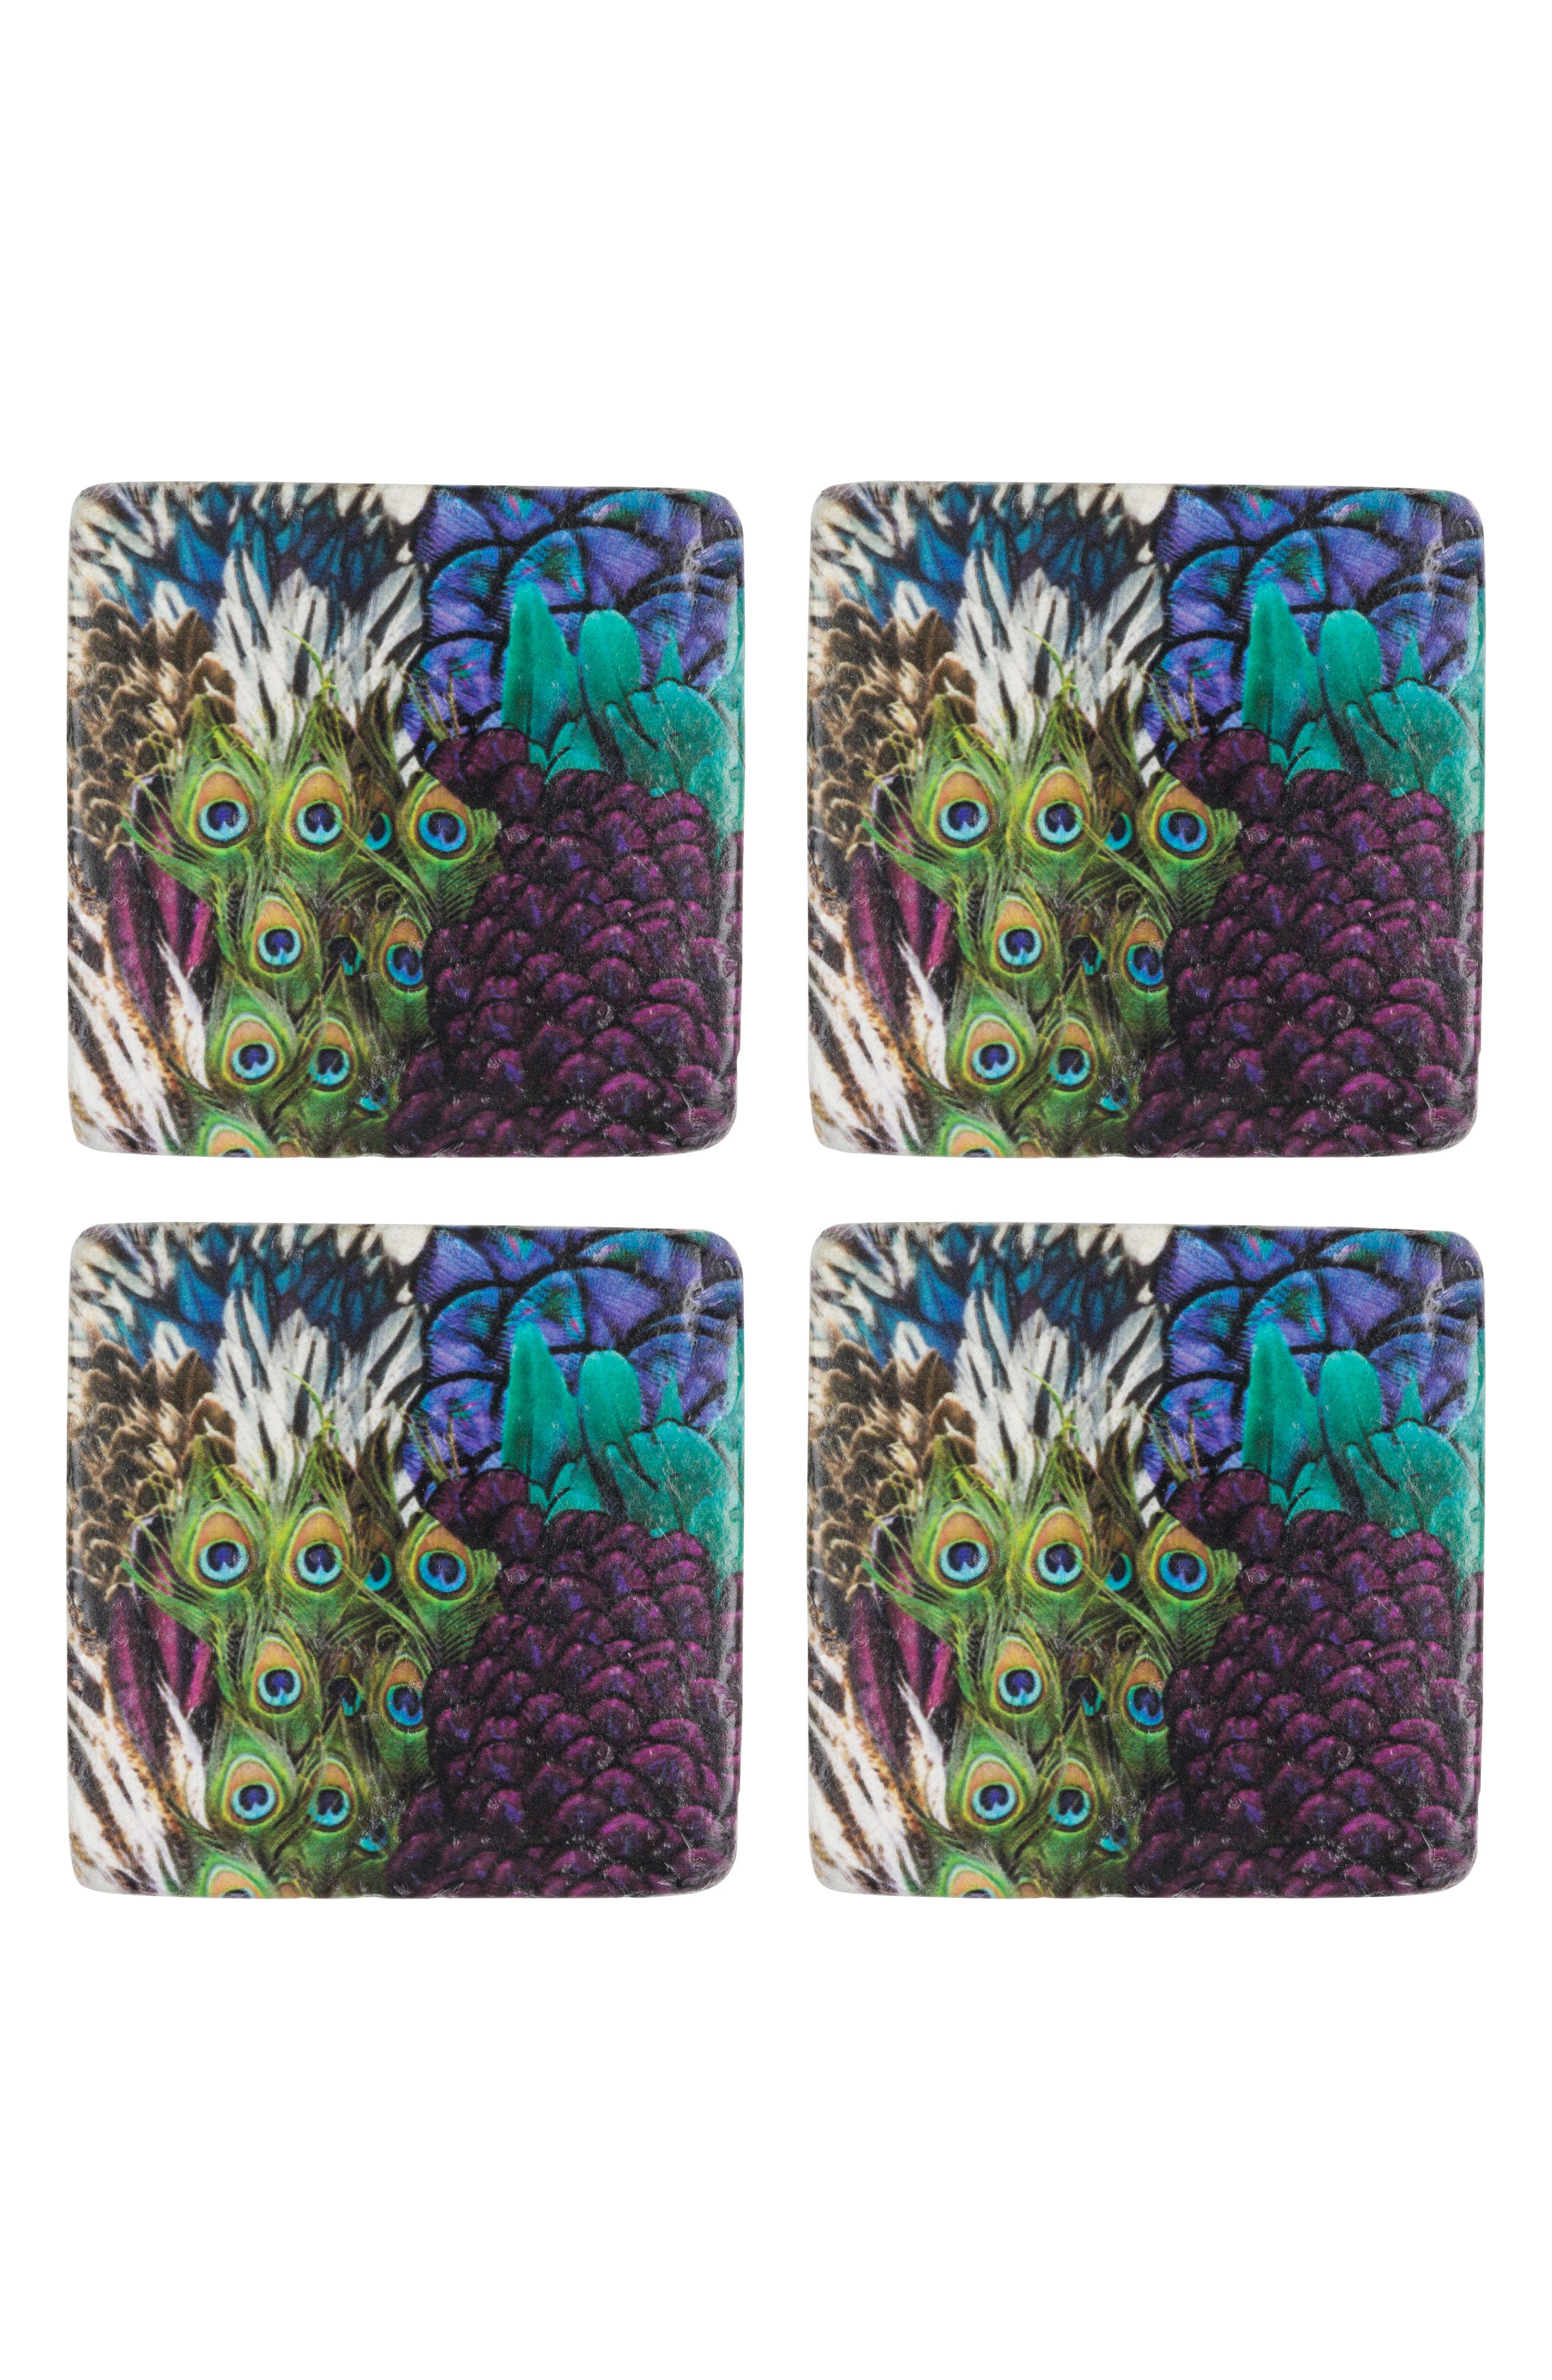 Eightmood Flair Set of 4 Resin Coasters